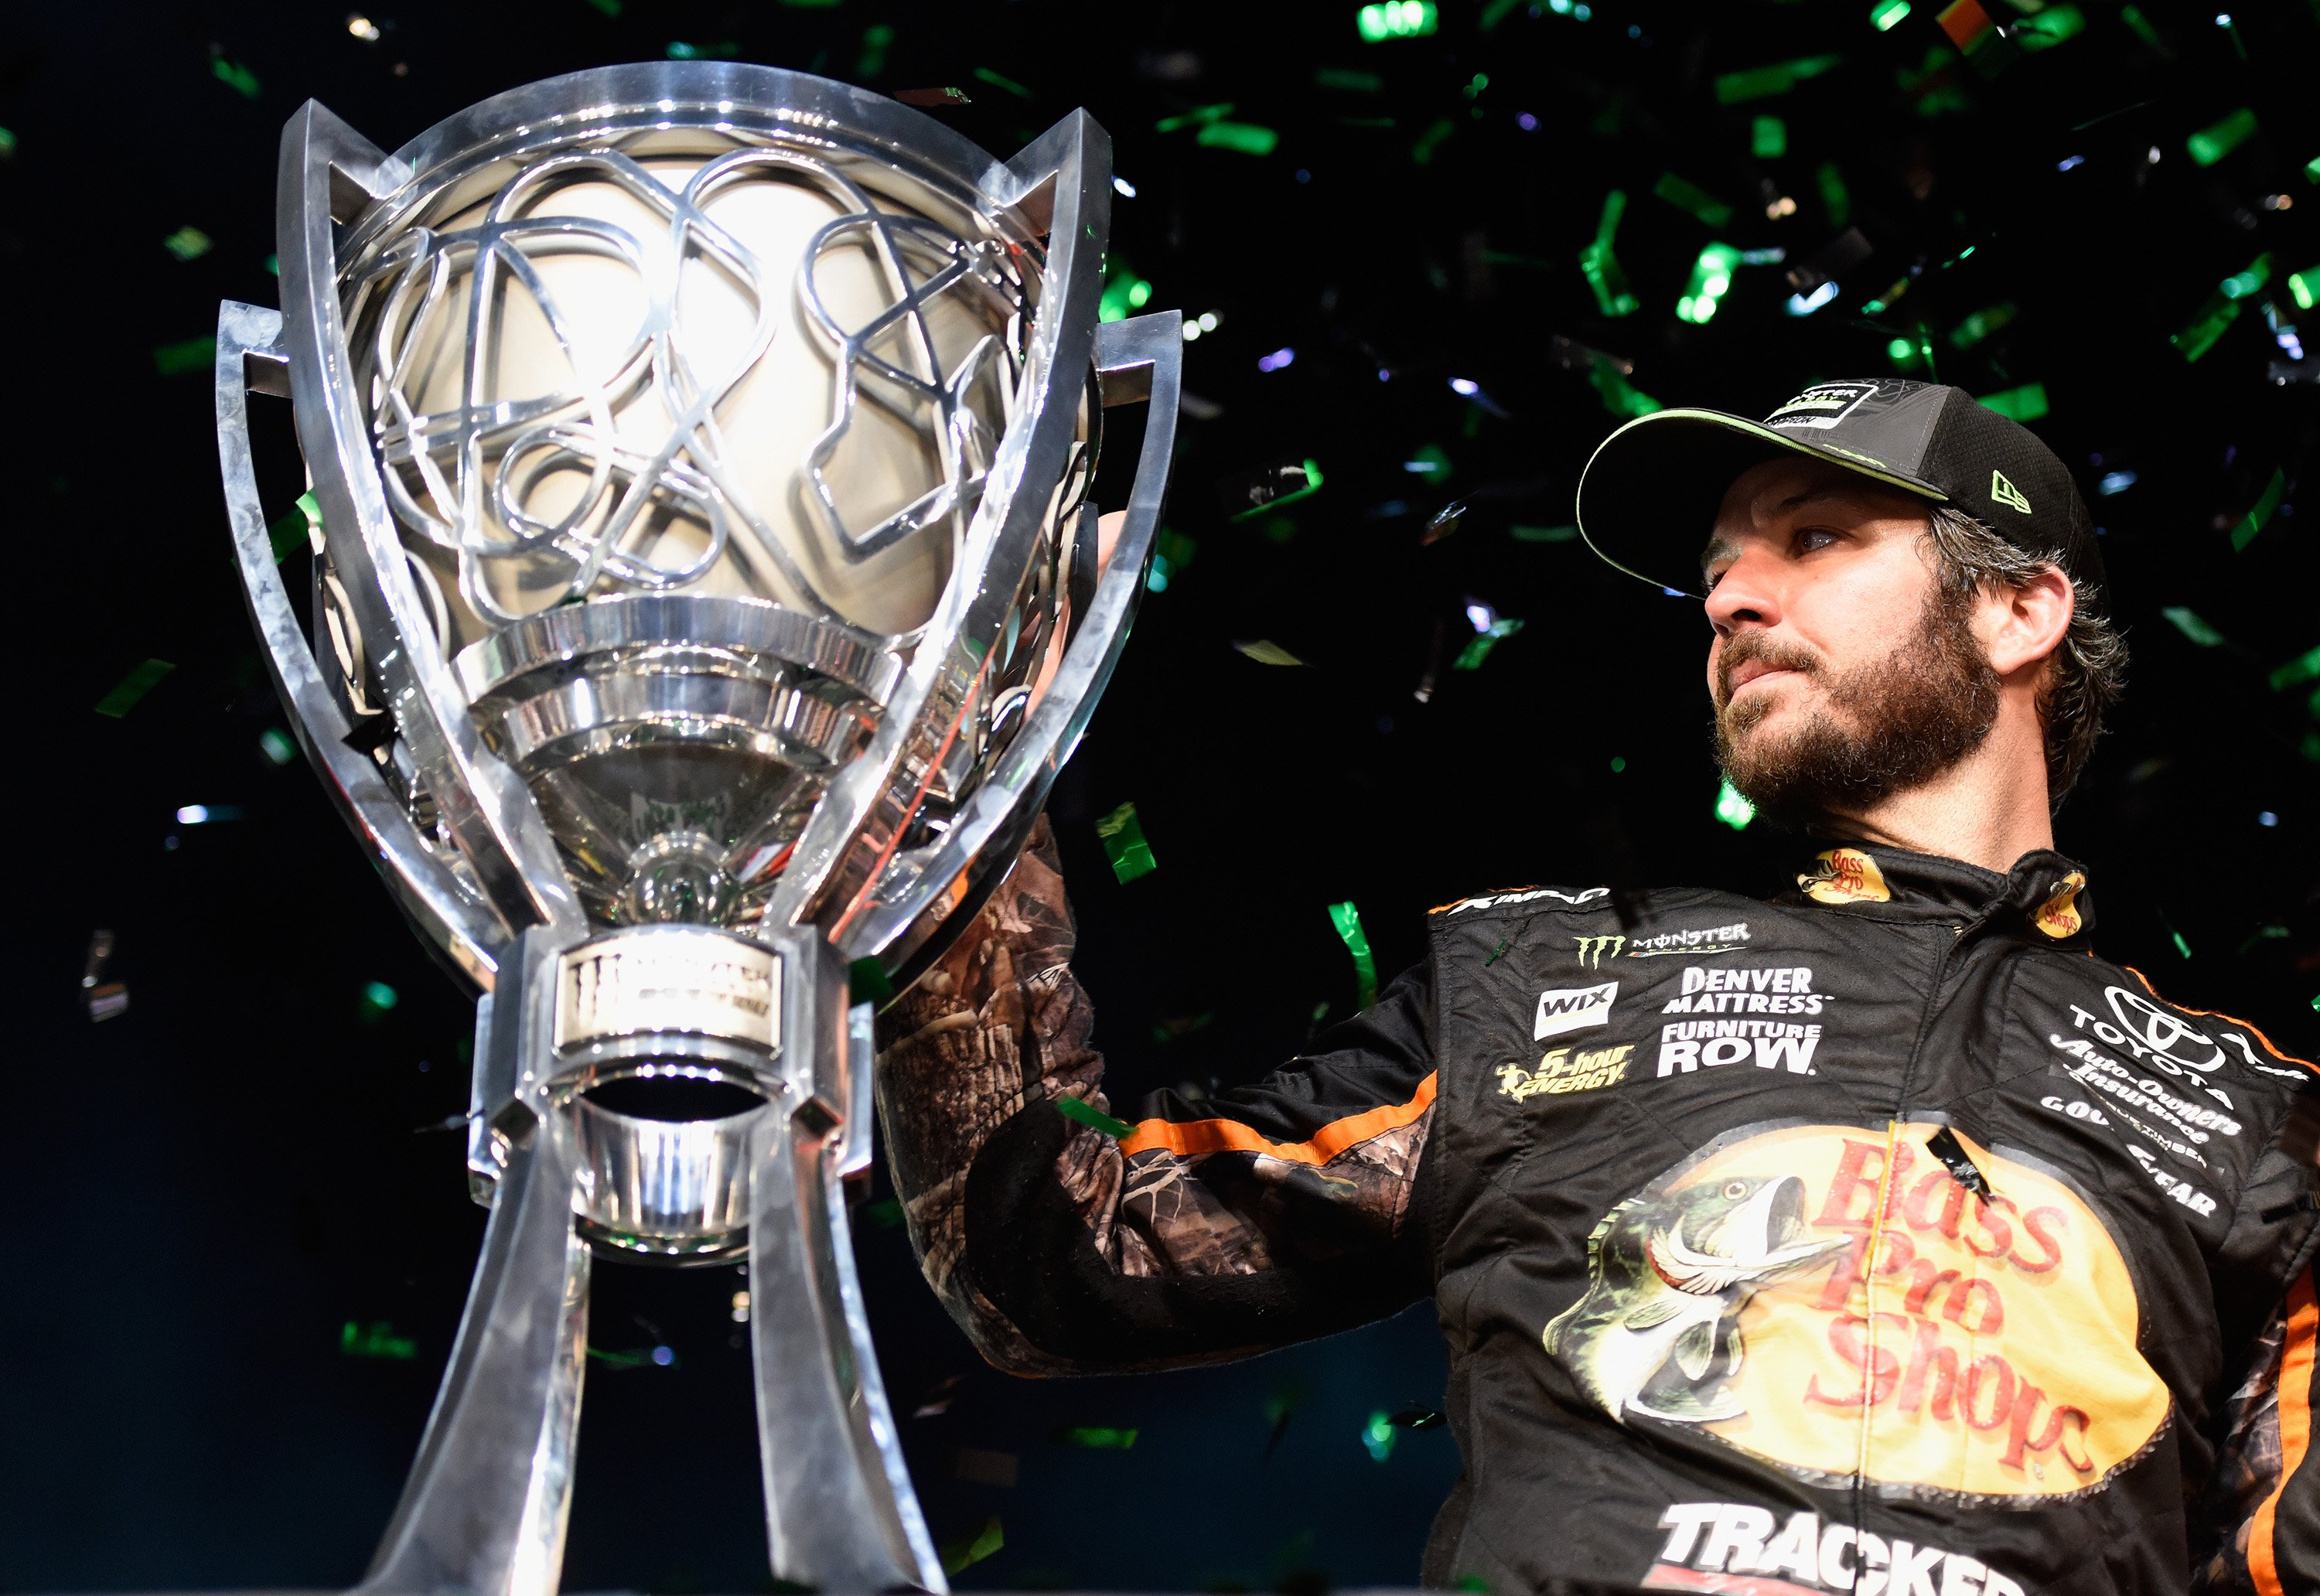 2017 Monster Energy NASCAR Cup Series Champion Martin Truex Jr